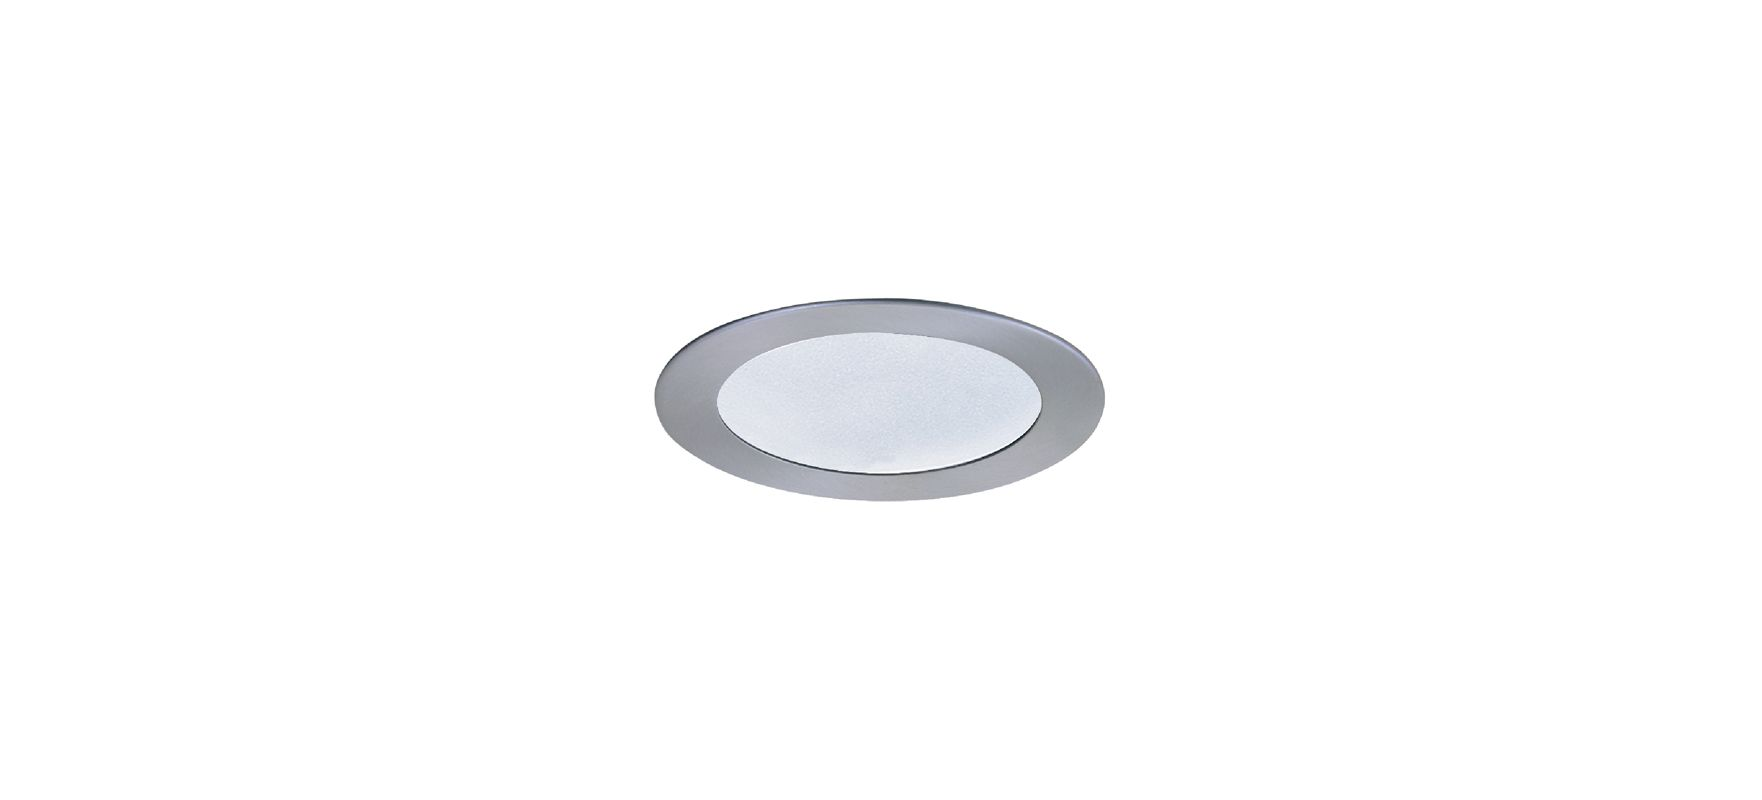 "Elco EL912 4"" Shower Trim with Frosted Lens Nickel Recessed Lights"